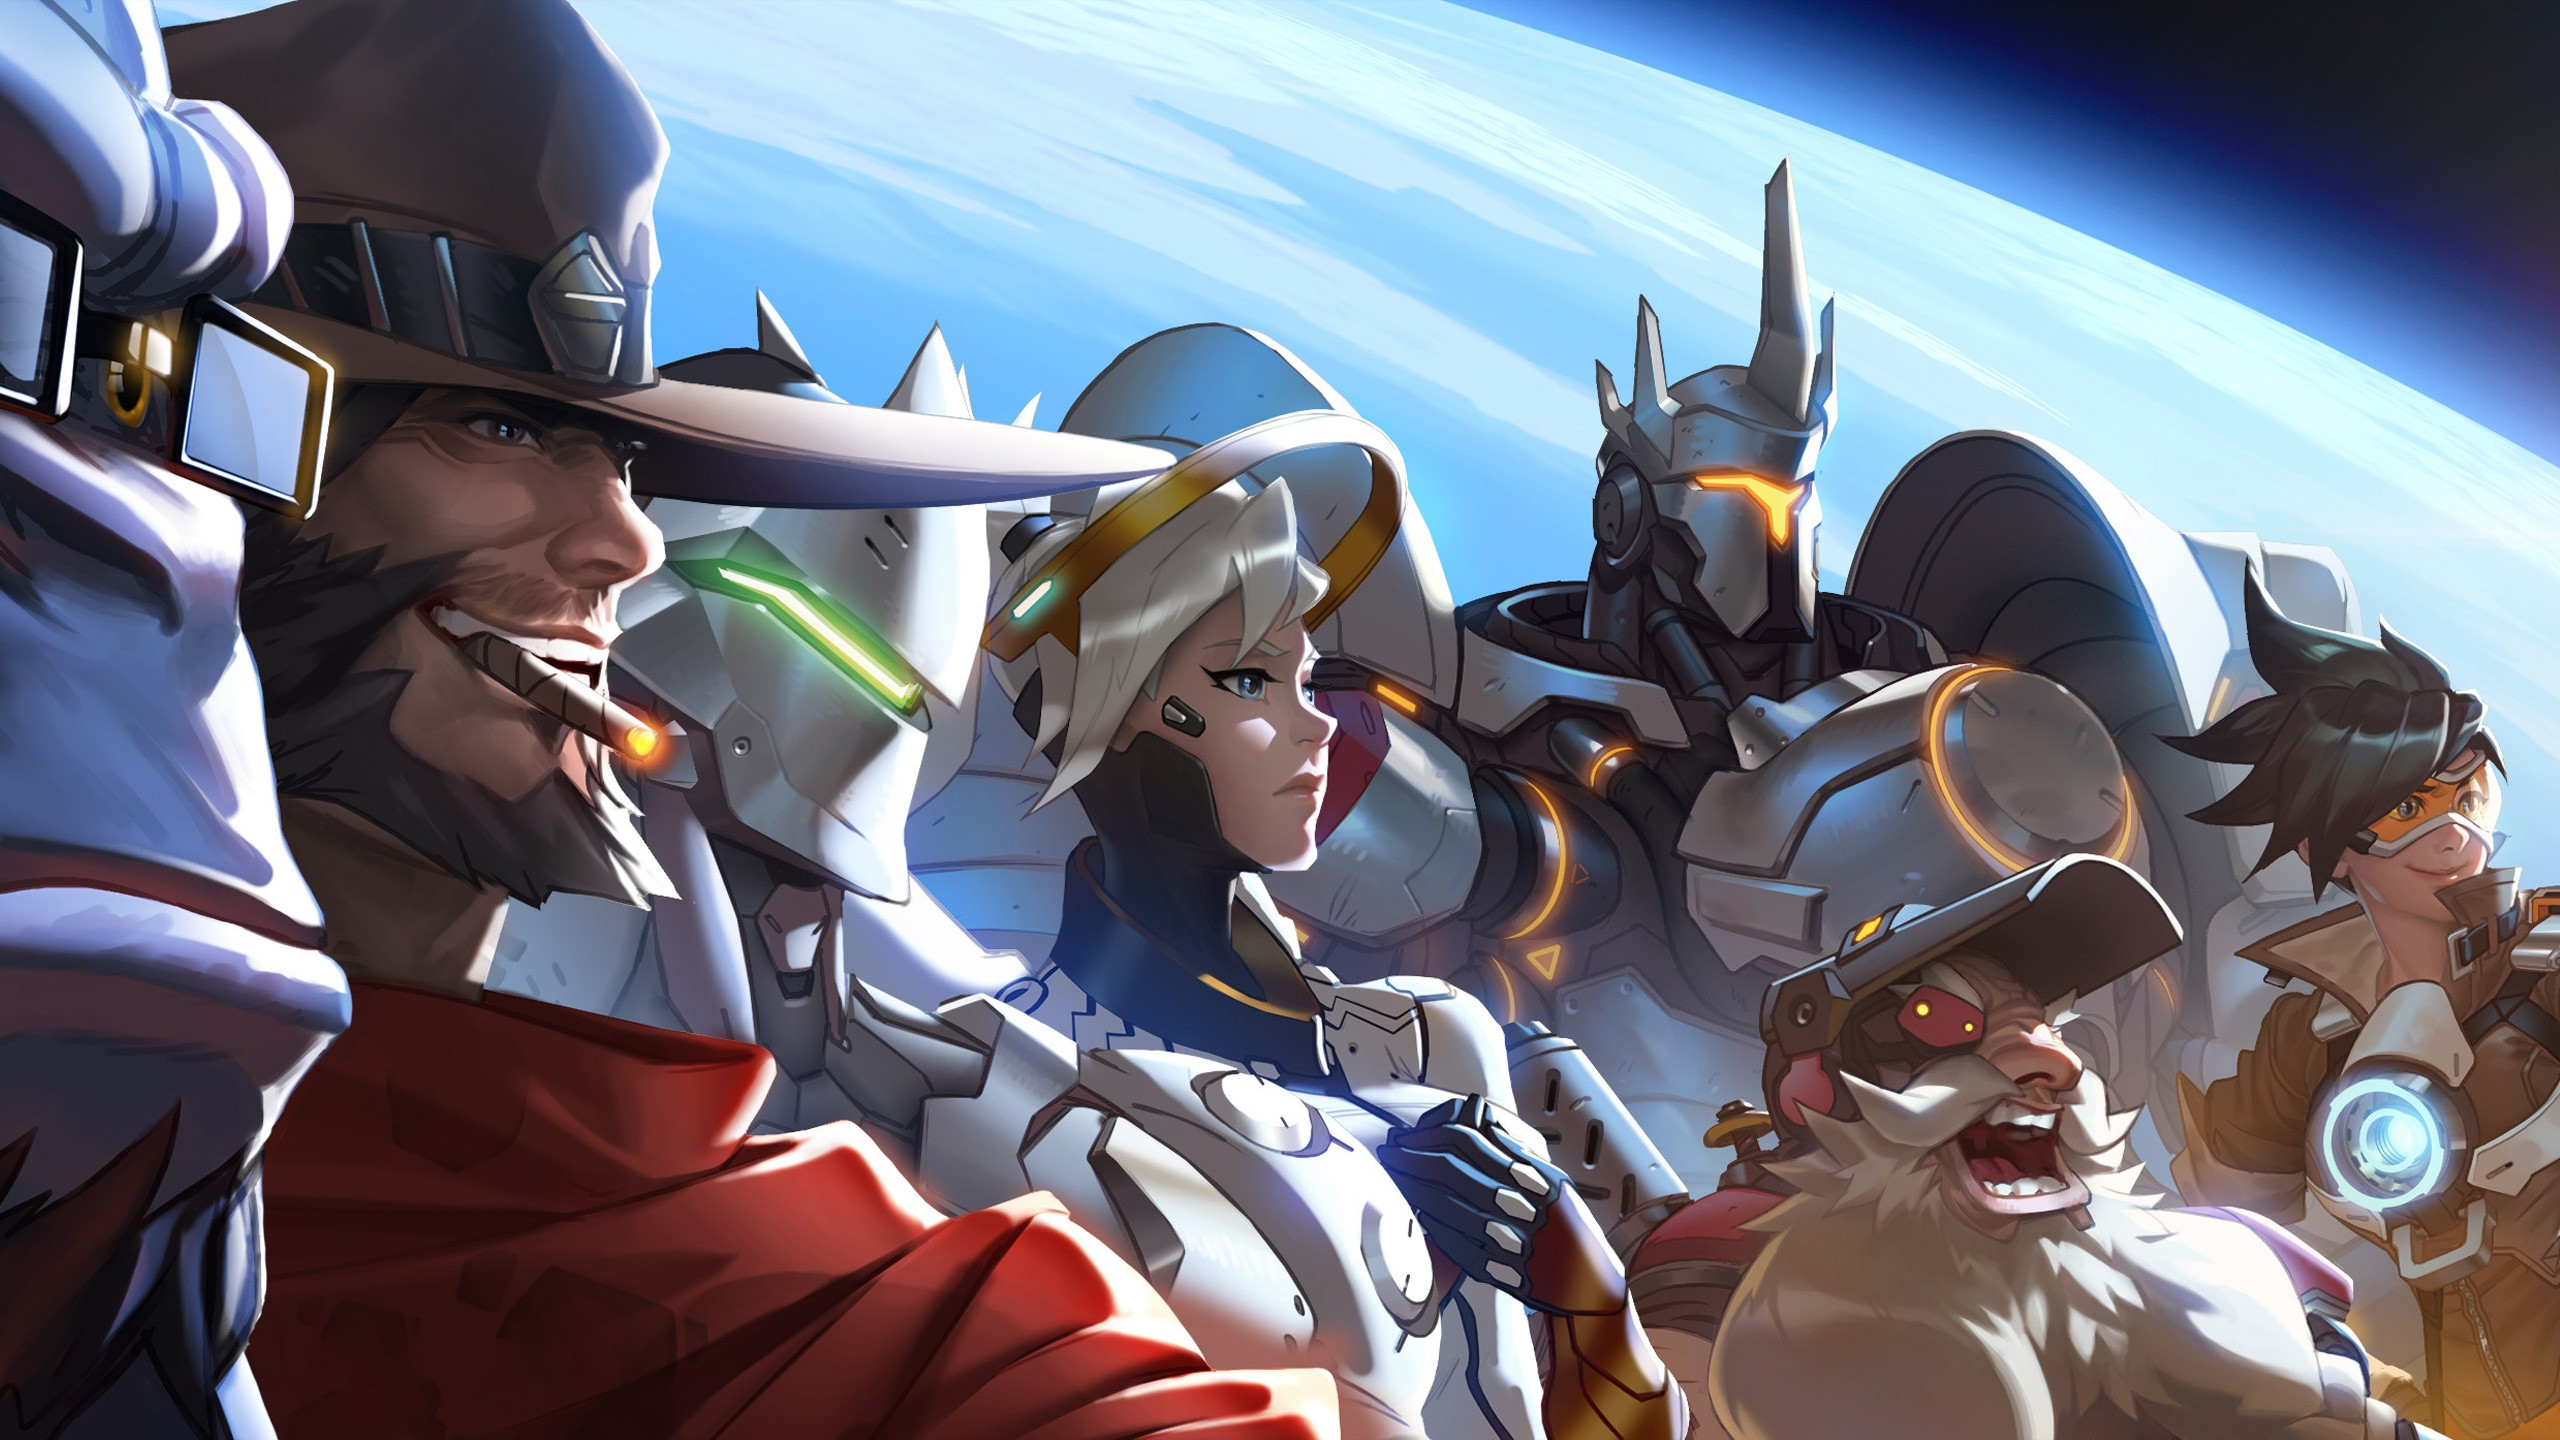 overwatch 4k widescreen desktop wallpaper 1242